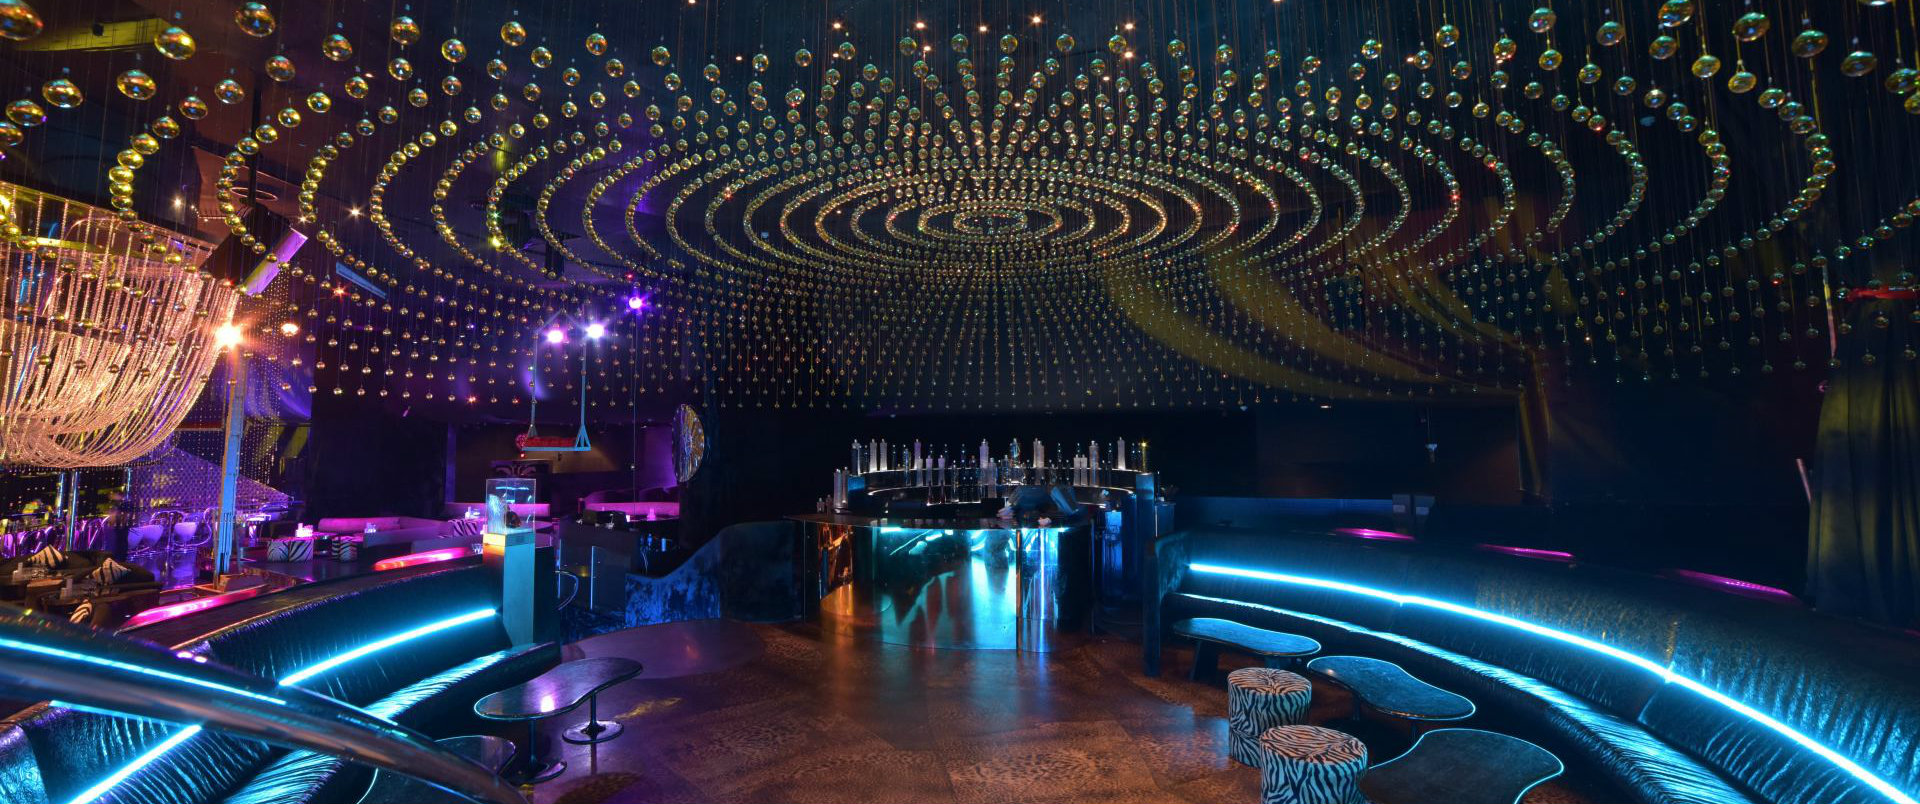 Night Club with Swarovski Crystals by Roberto Cavalli luxury interiors The Empire Family: brighten up your luxury interiors cover3 luxury interiors The Empire Family: brighten up your luxury interiors cover3